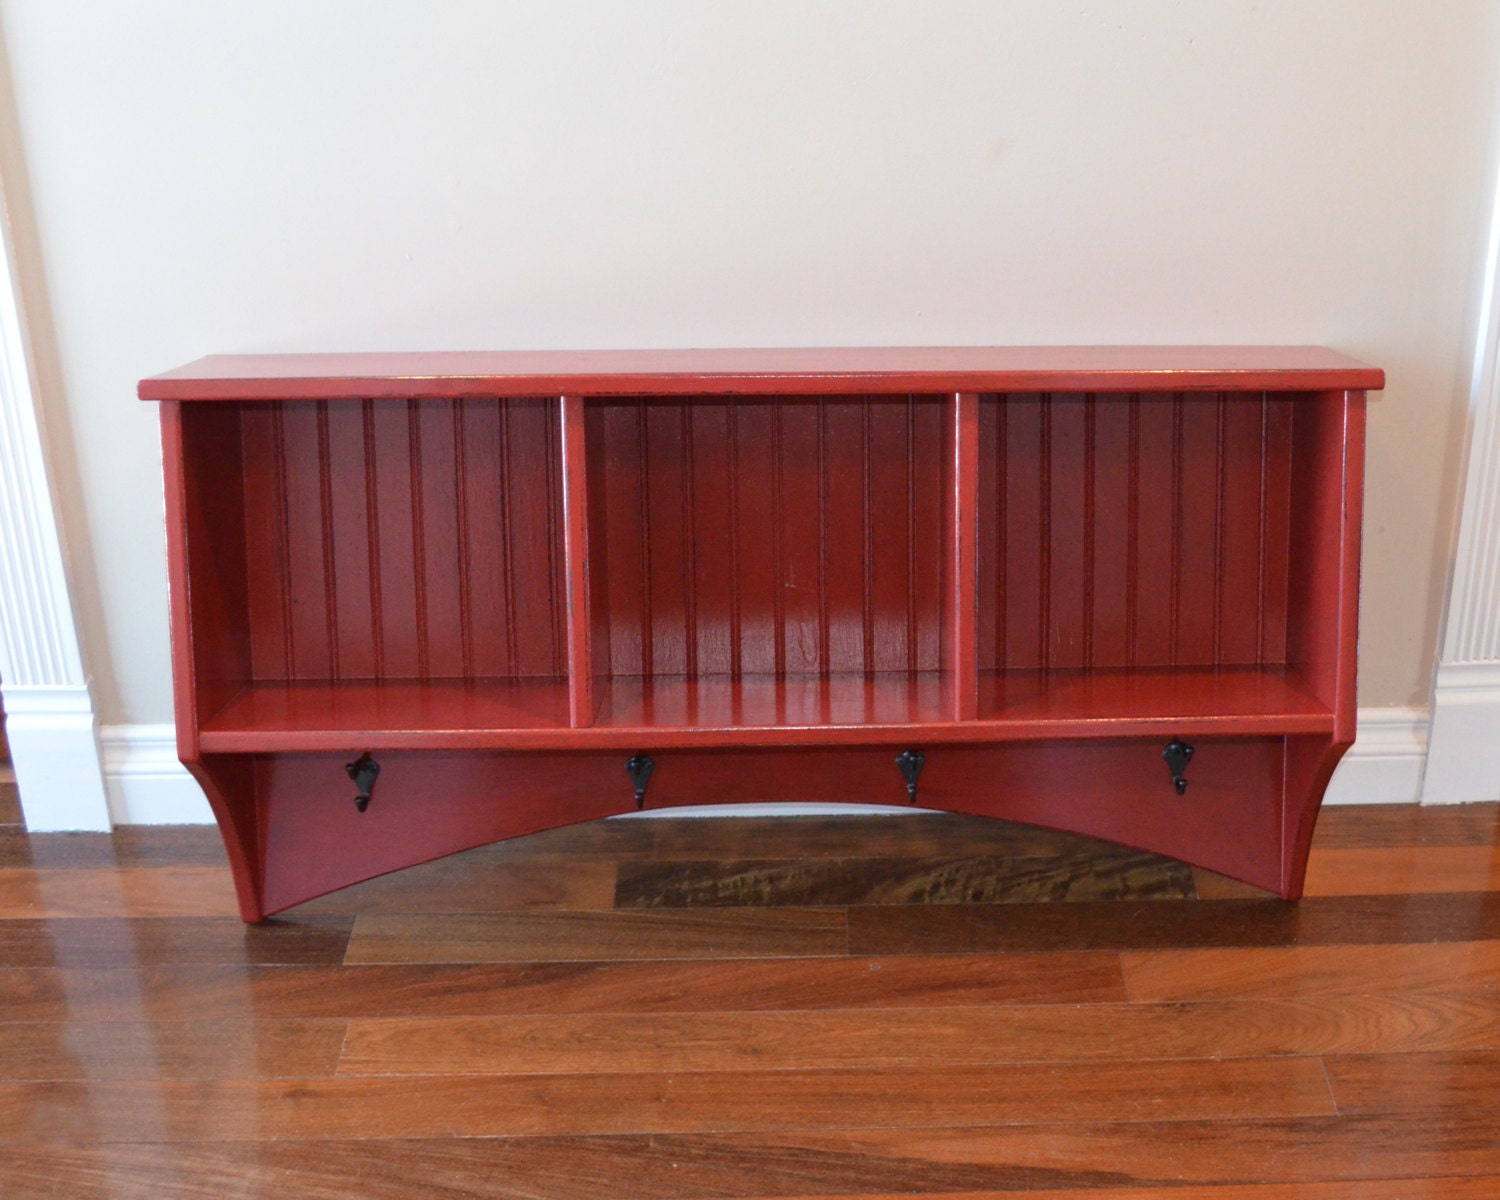 Foyer Cubby Storage : Entryway cubby storage shelf with coat hooks custom colors